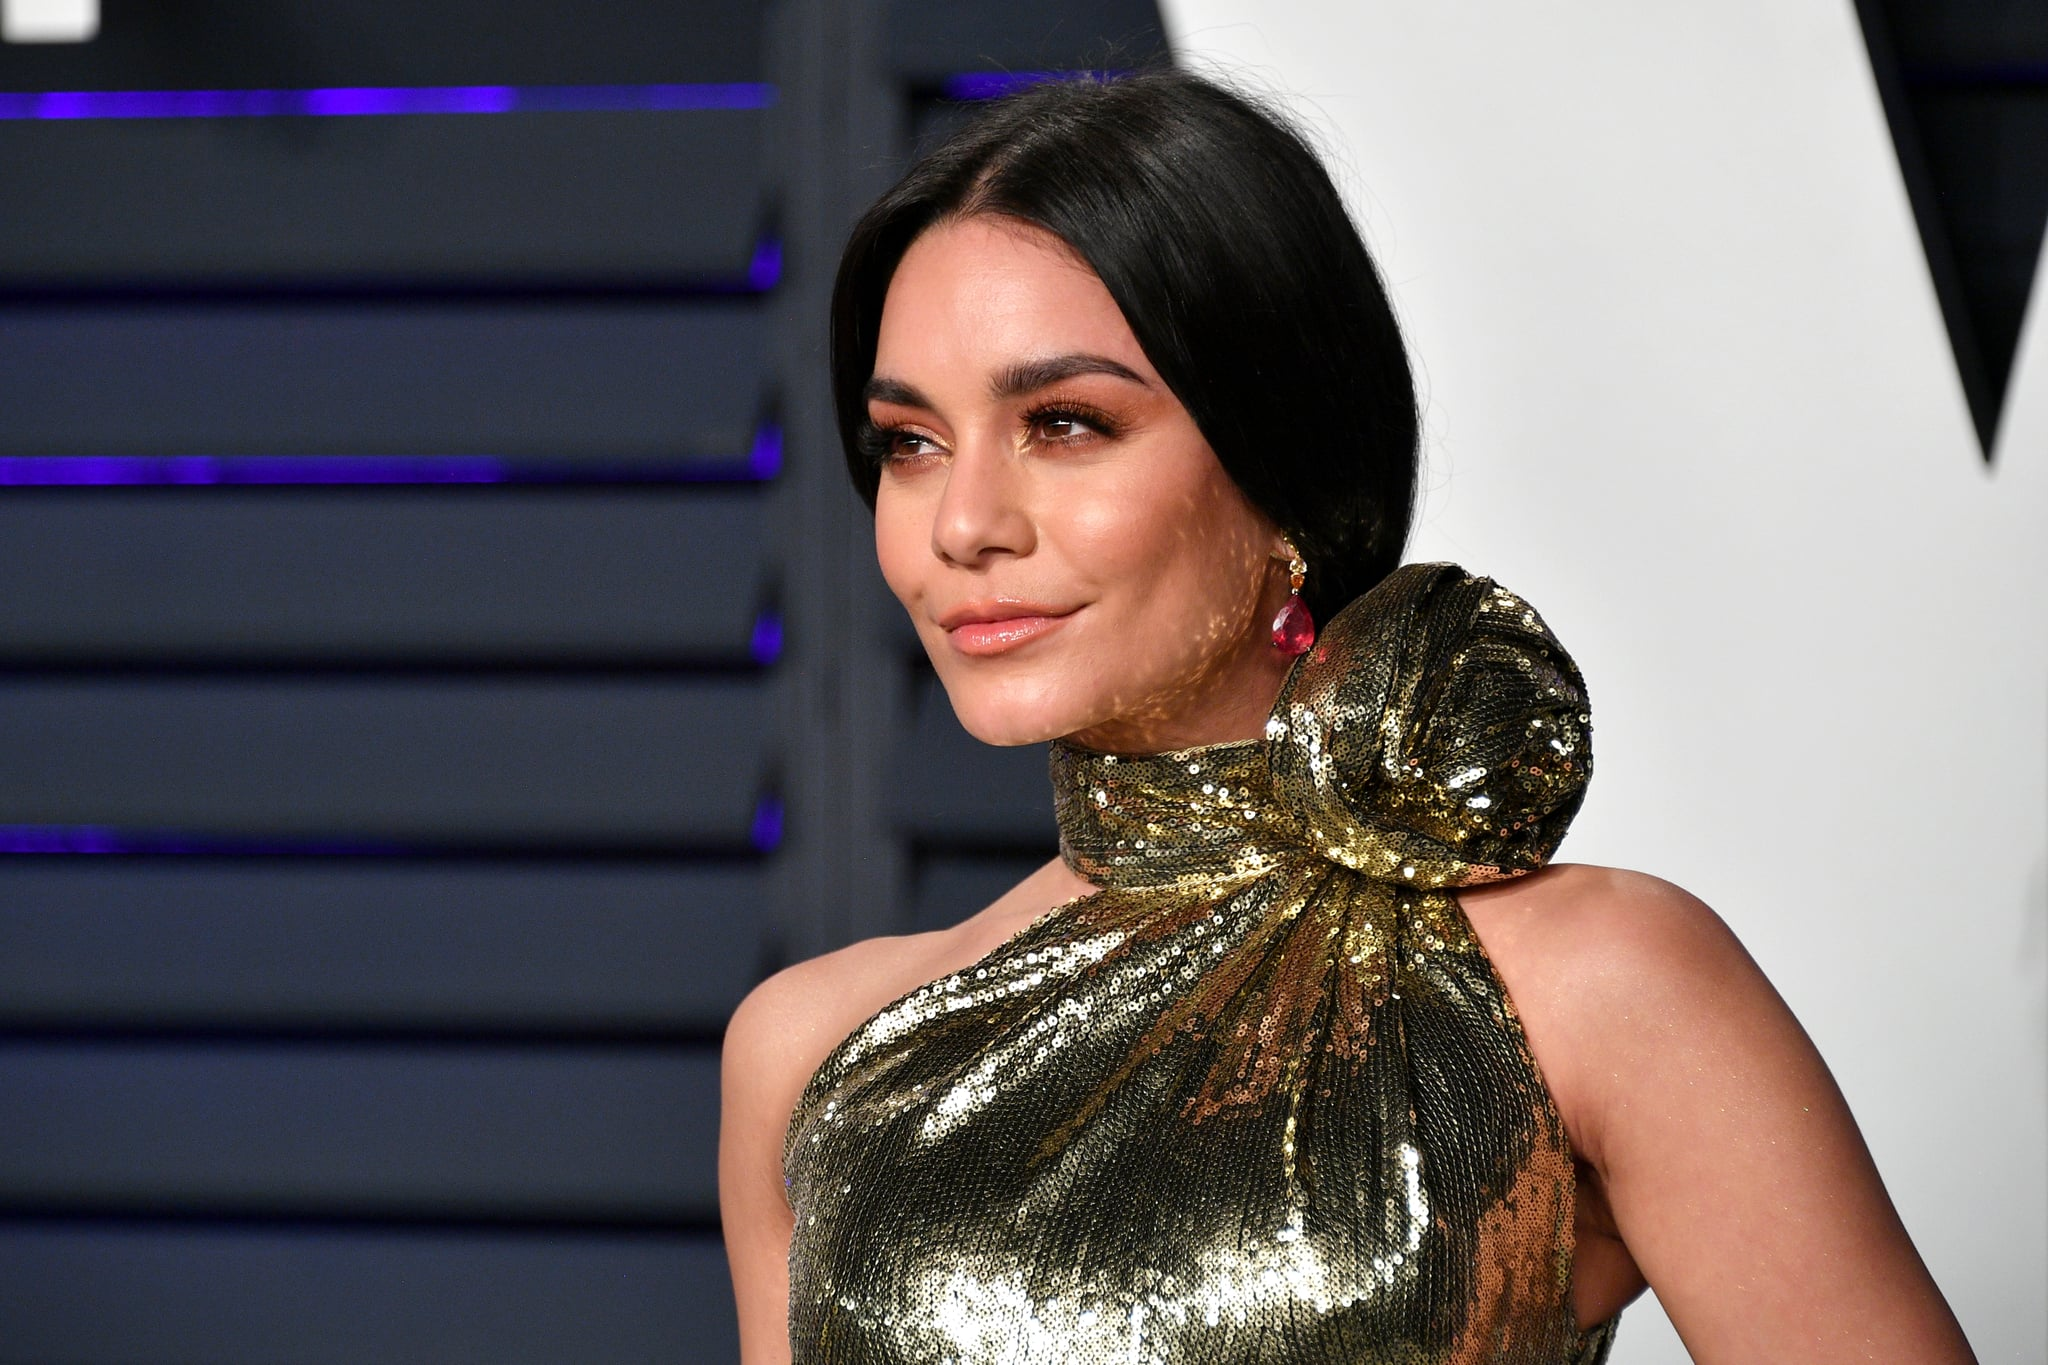 BEVERLY HILLS, CA - FEBRUARY 24:  Vanessa Hudgens attends the 2019 Vanity Fair Oscar Party hosted by Radhika Jones at Wallis Annenberg Center for the Performing Arts on February 24, 2019 in Beverly Hills, California.  (Photo by Dia Dipasupil/Getty Images)